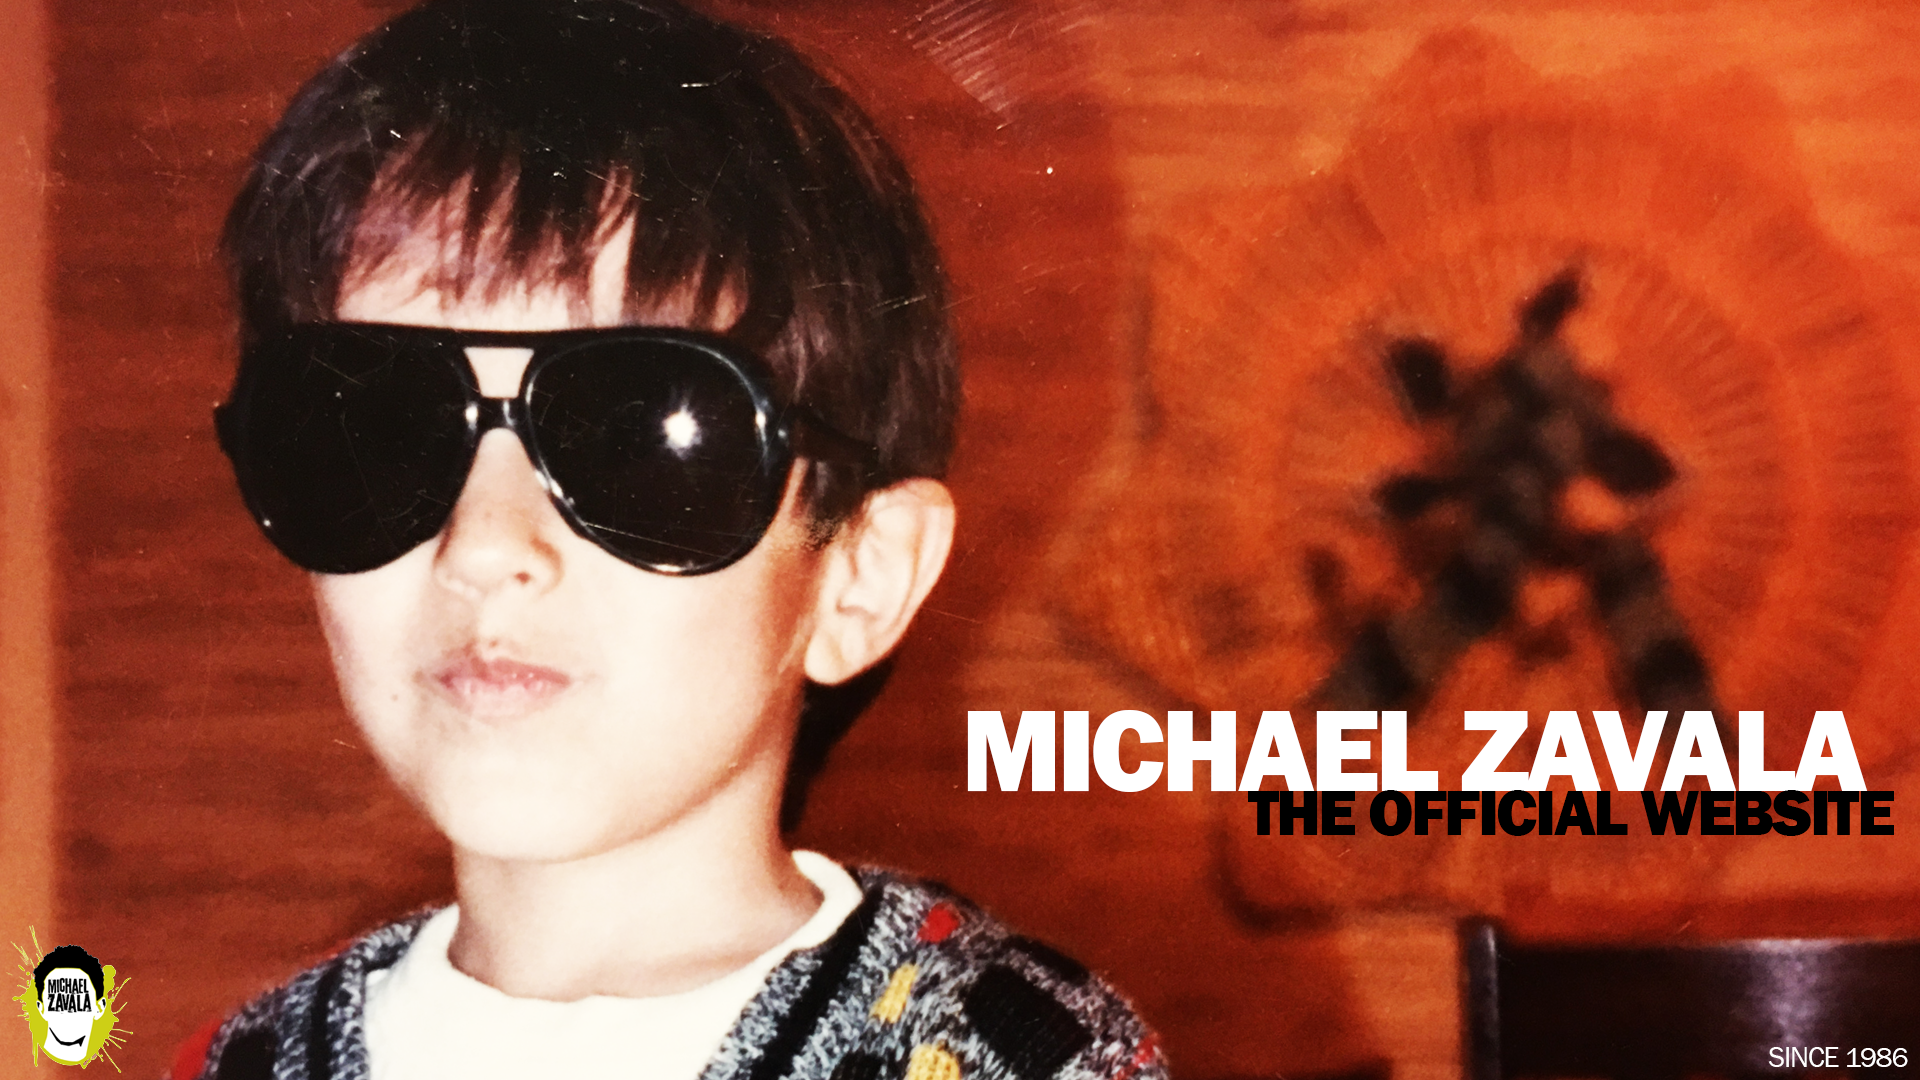 Michael Zavala - The Official Website